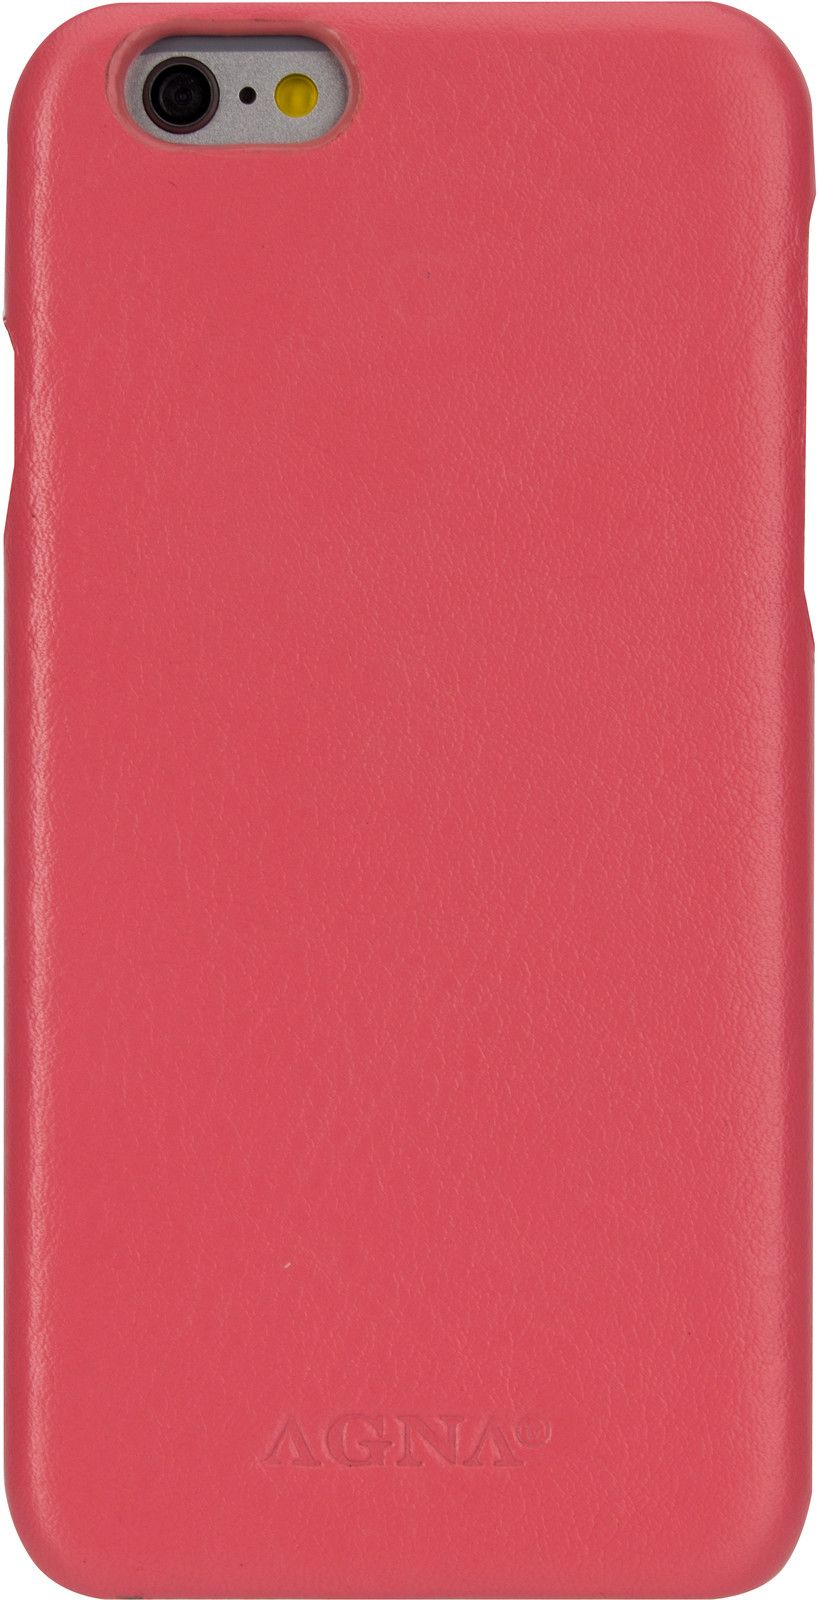 Agna iPlate Real Leather (iPhone 6/6S) - Rosa